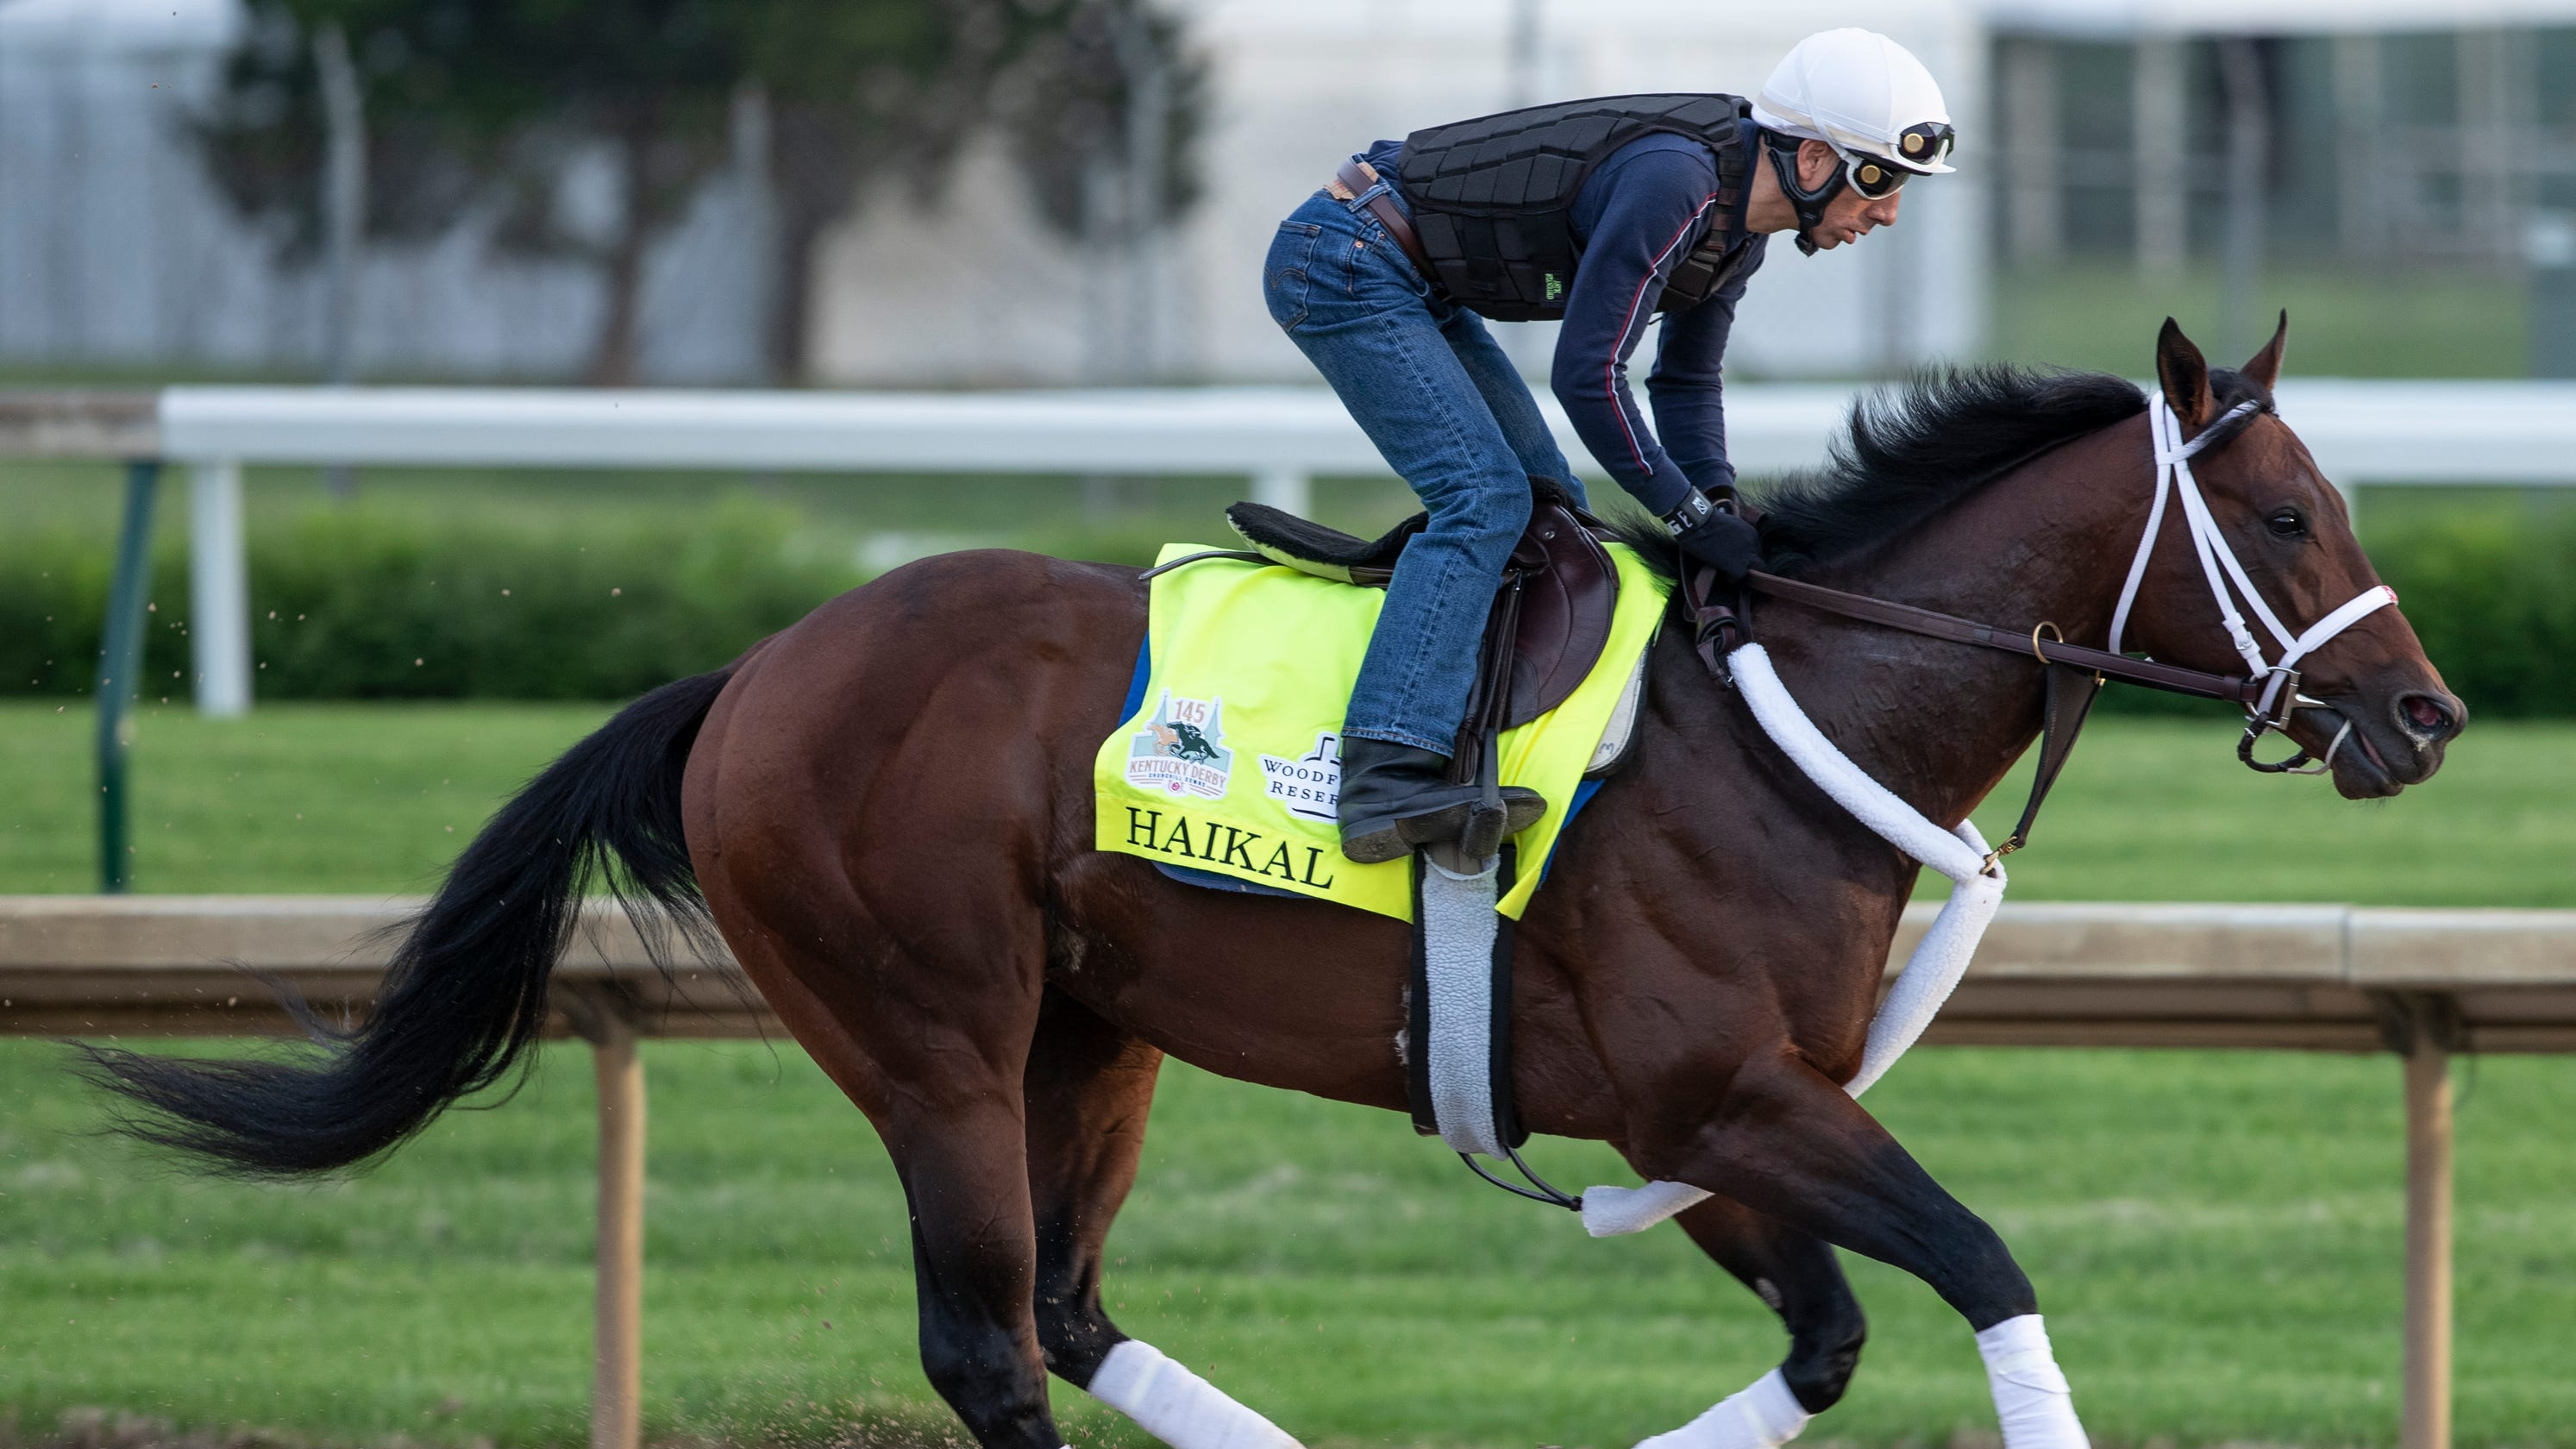 Kentucky Derby Contenders 2019: Haikal Scratched From Race